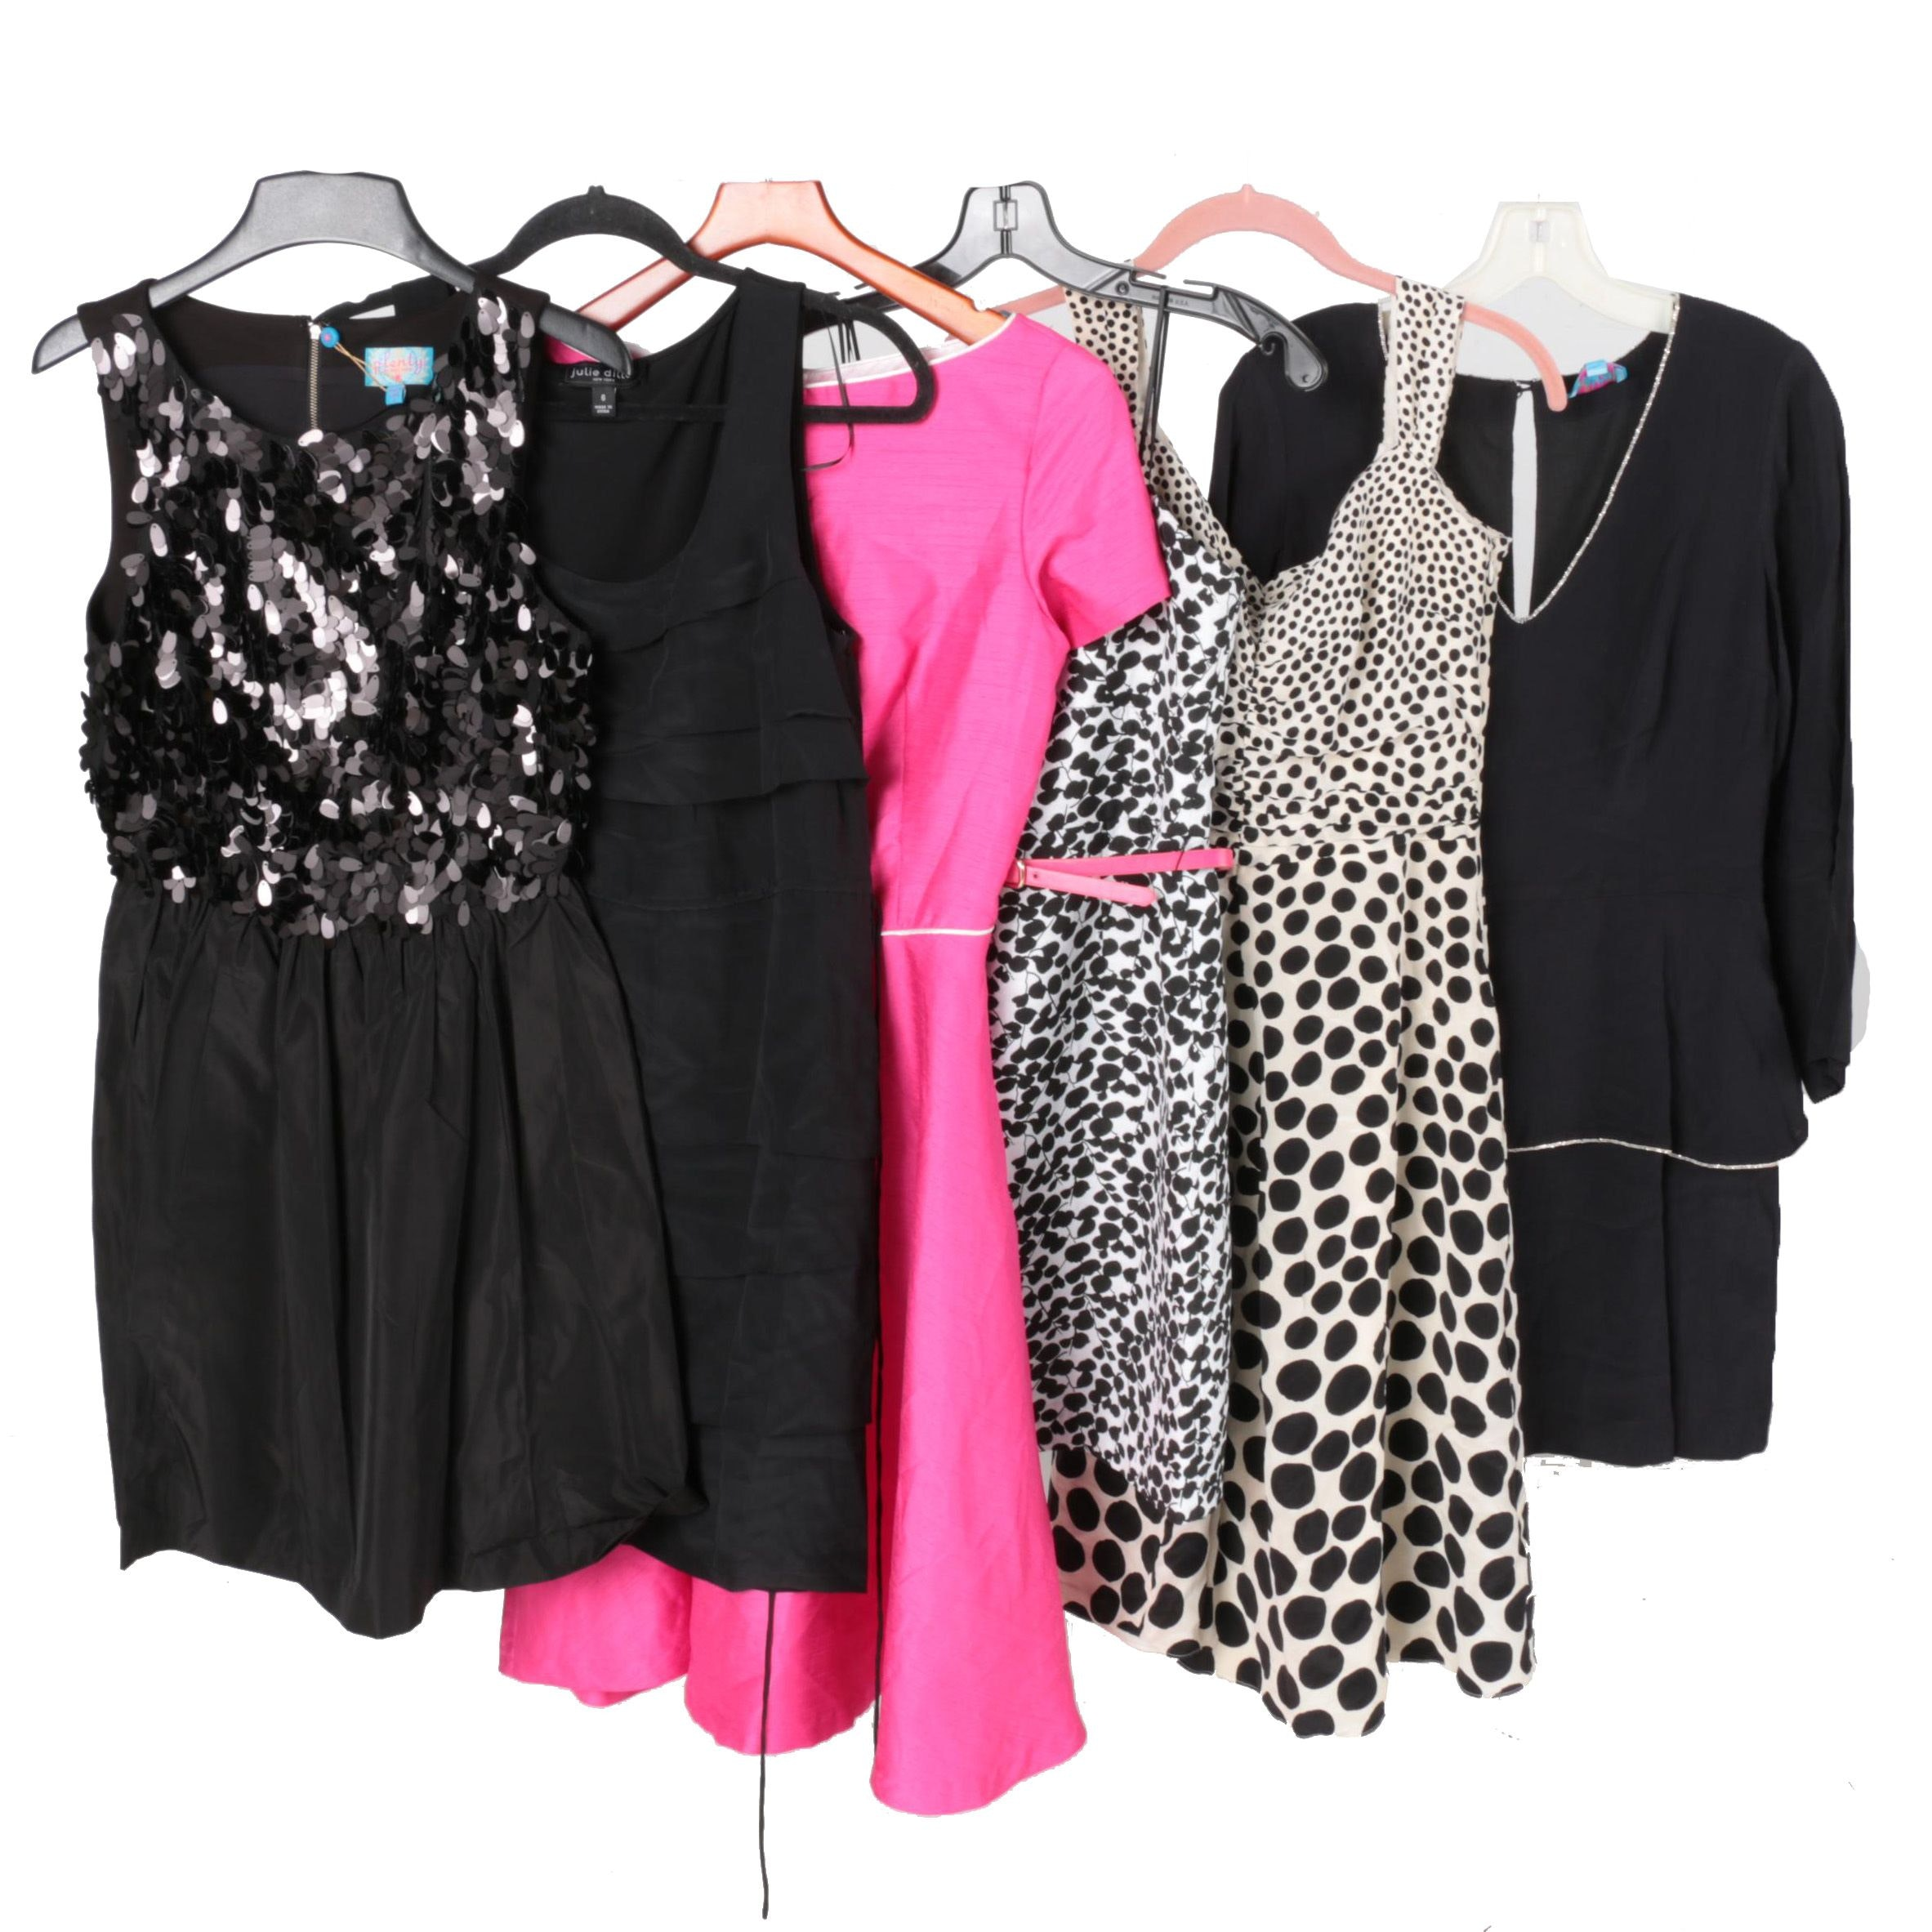 Six Dresses Including Ann Taylor